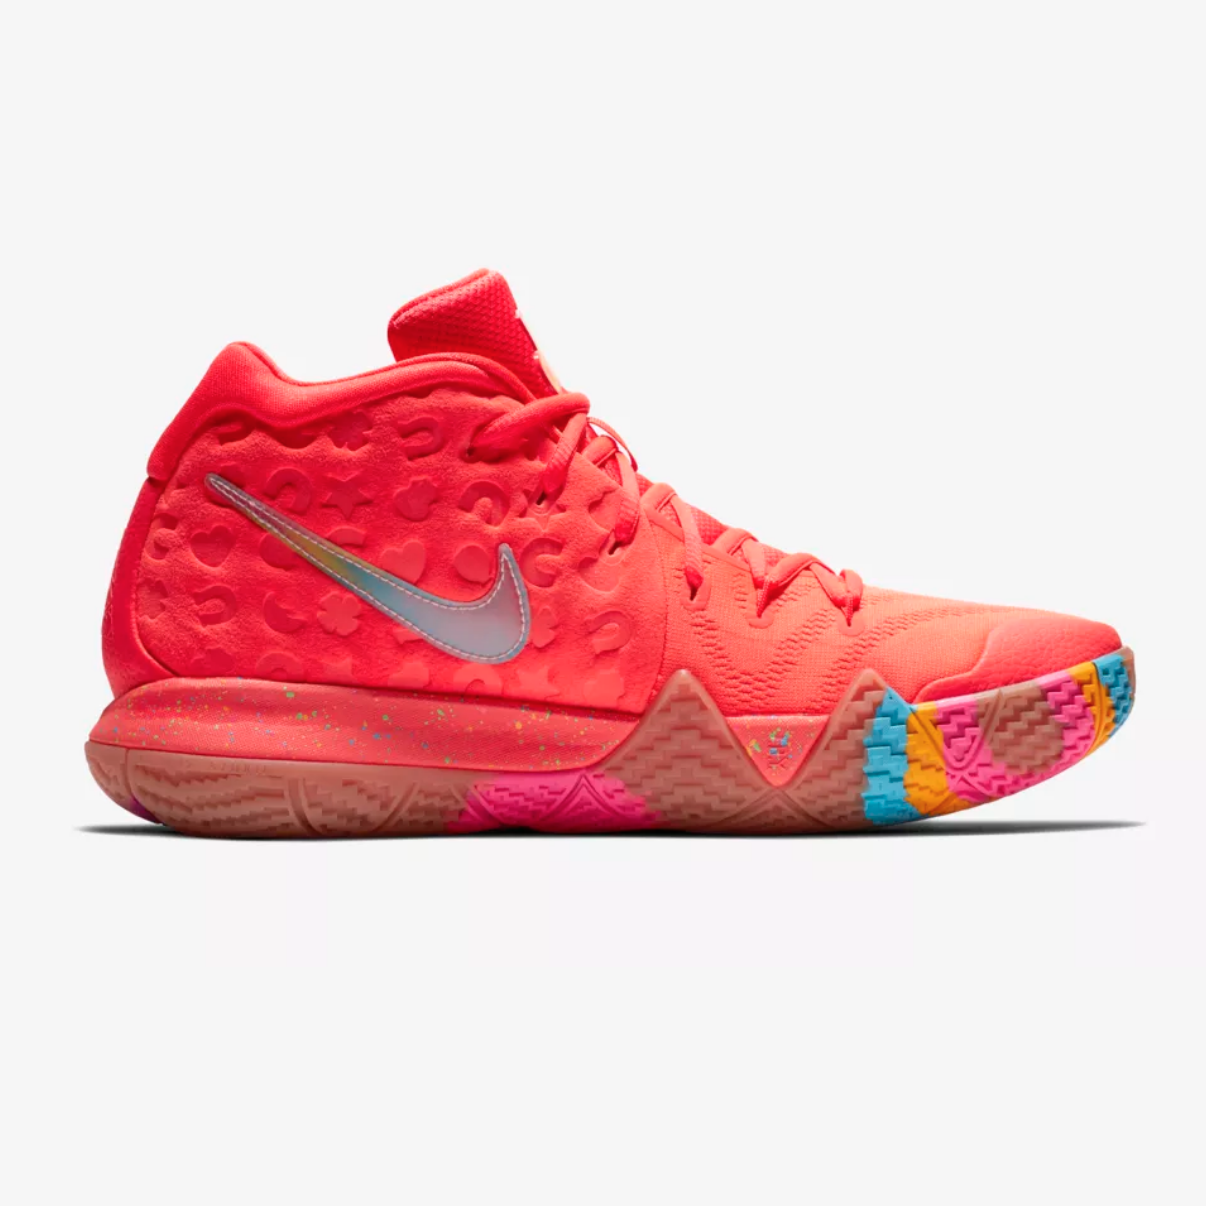 pretty nice dff66 5c3d8 Details about Nike Kyrie Irving 4 IV Lucky Charms Cereal Red ...